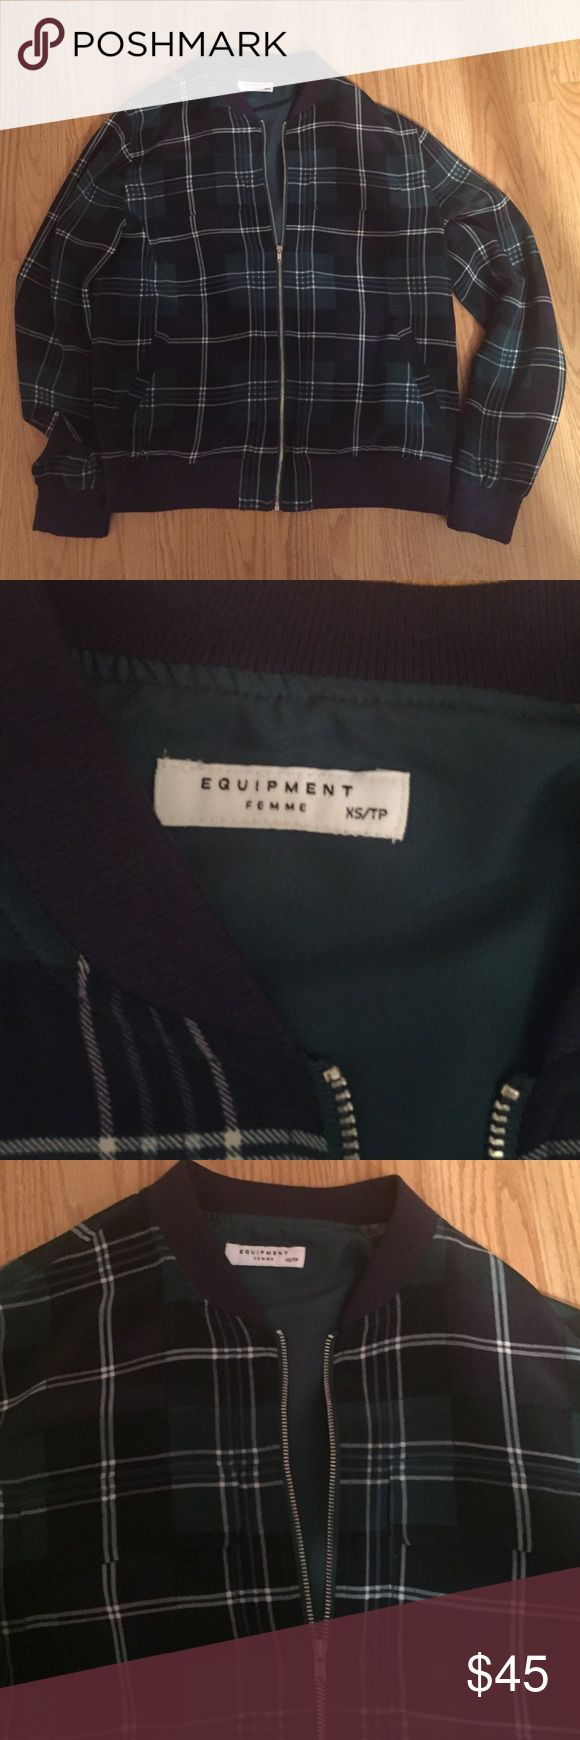 Equipment blue green and white jacket size XS Equipment plaid blue green and white zip up jacket size XS.  Worn on time and it is in perfect condition! Equipment Jackets & Coats